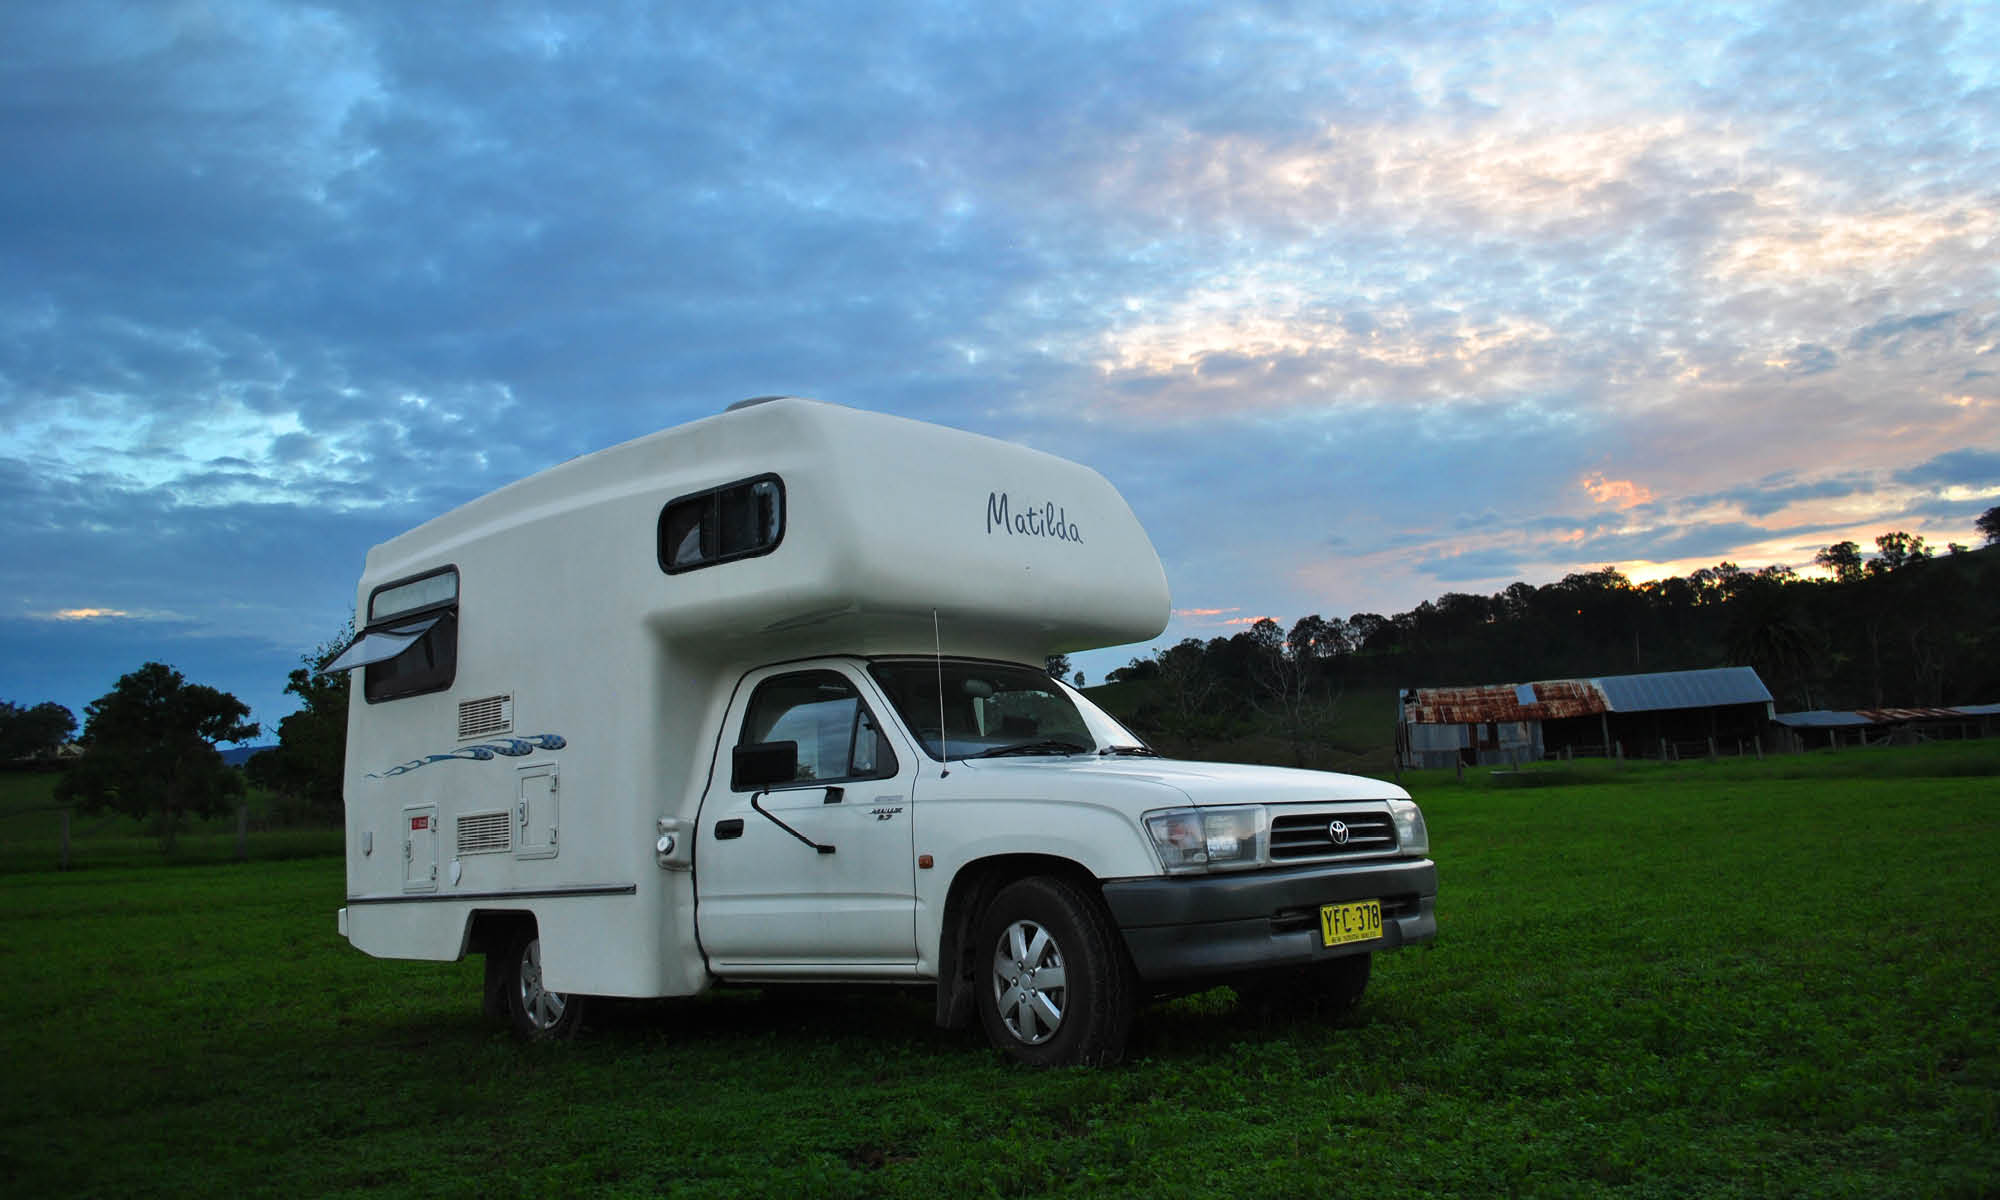 THE OCCASIONAL RV TOURIST OR 10 THINGS I LEARNT ABOUT MOTORHOMES